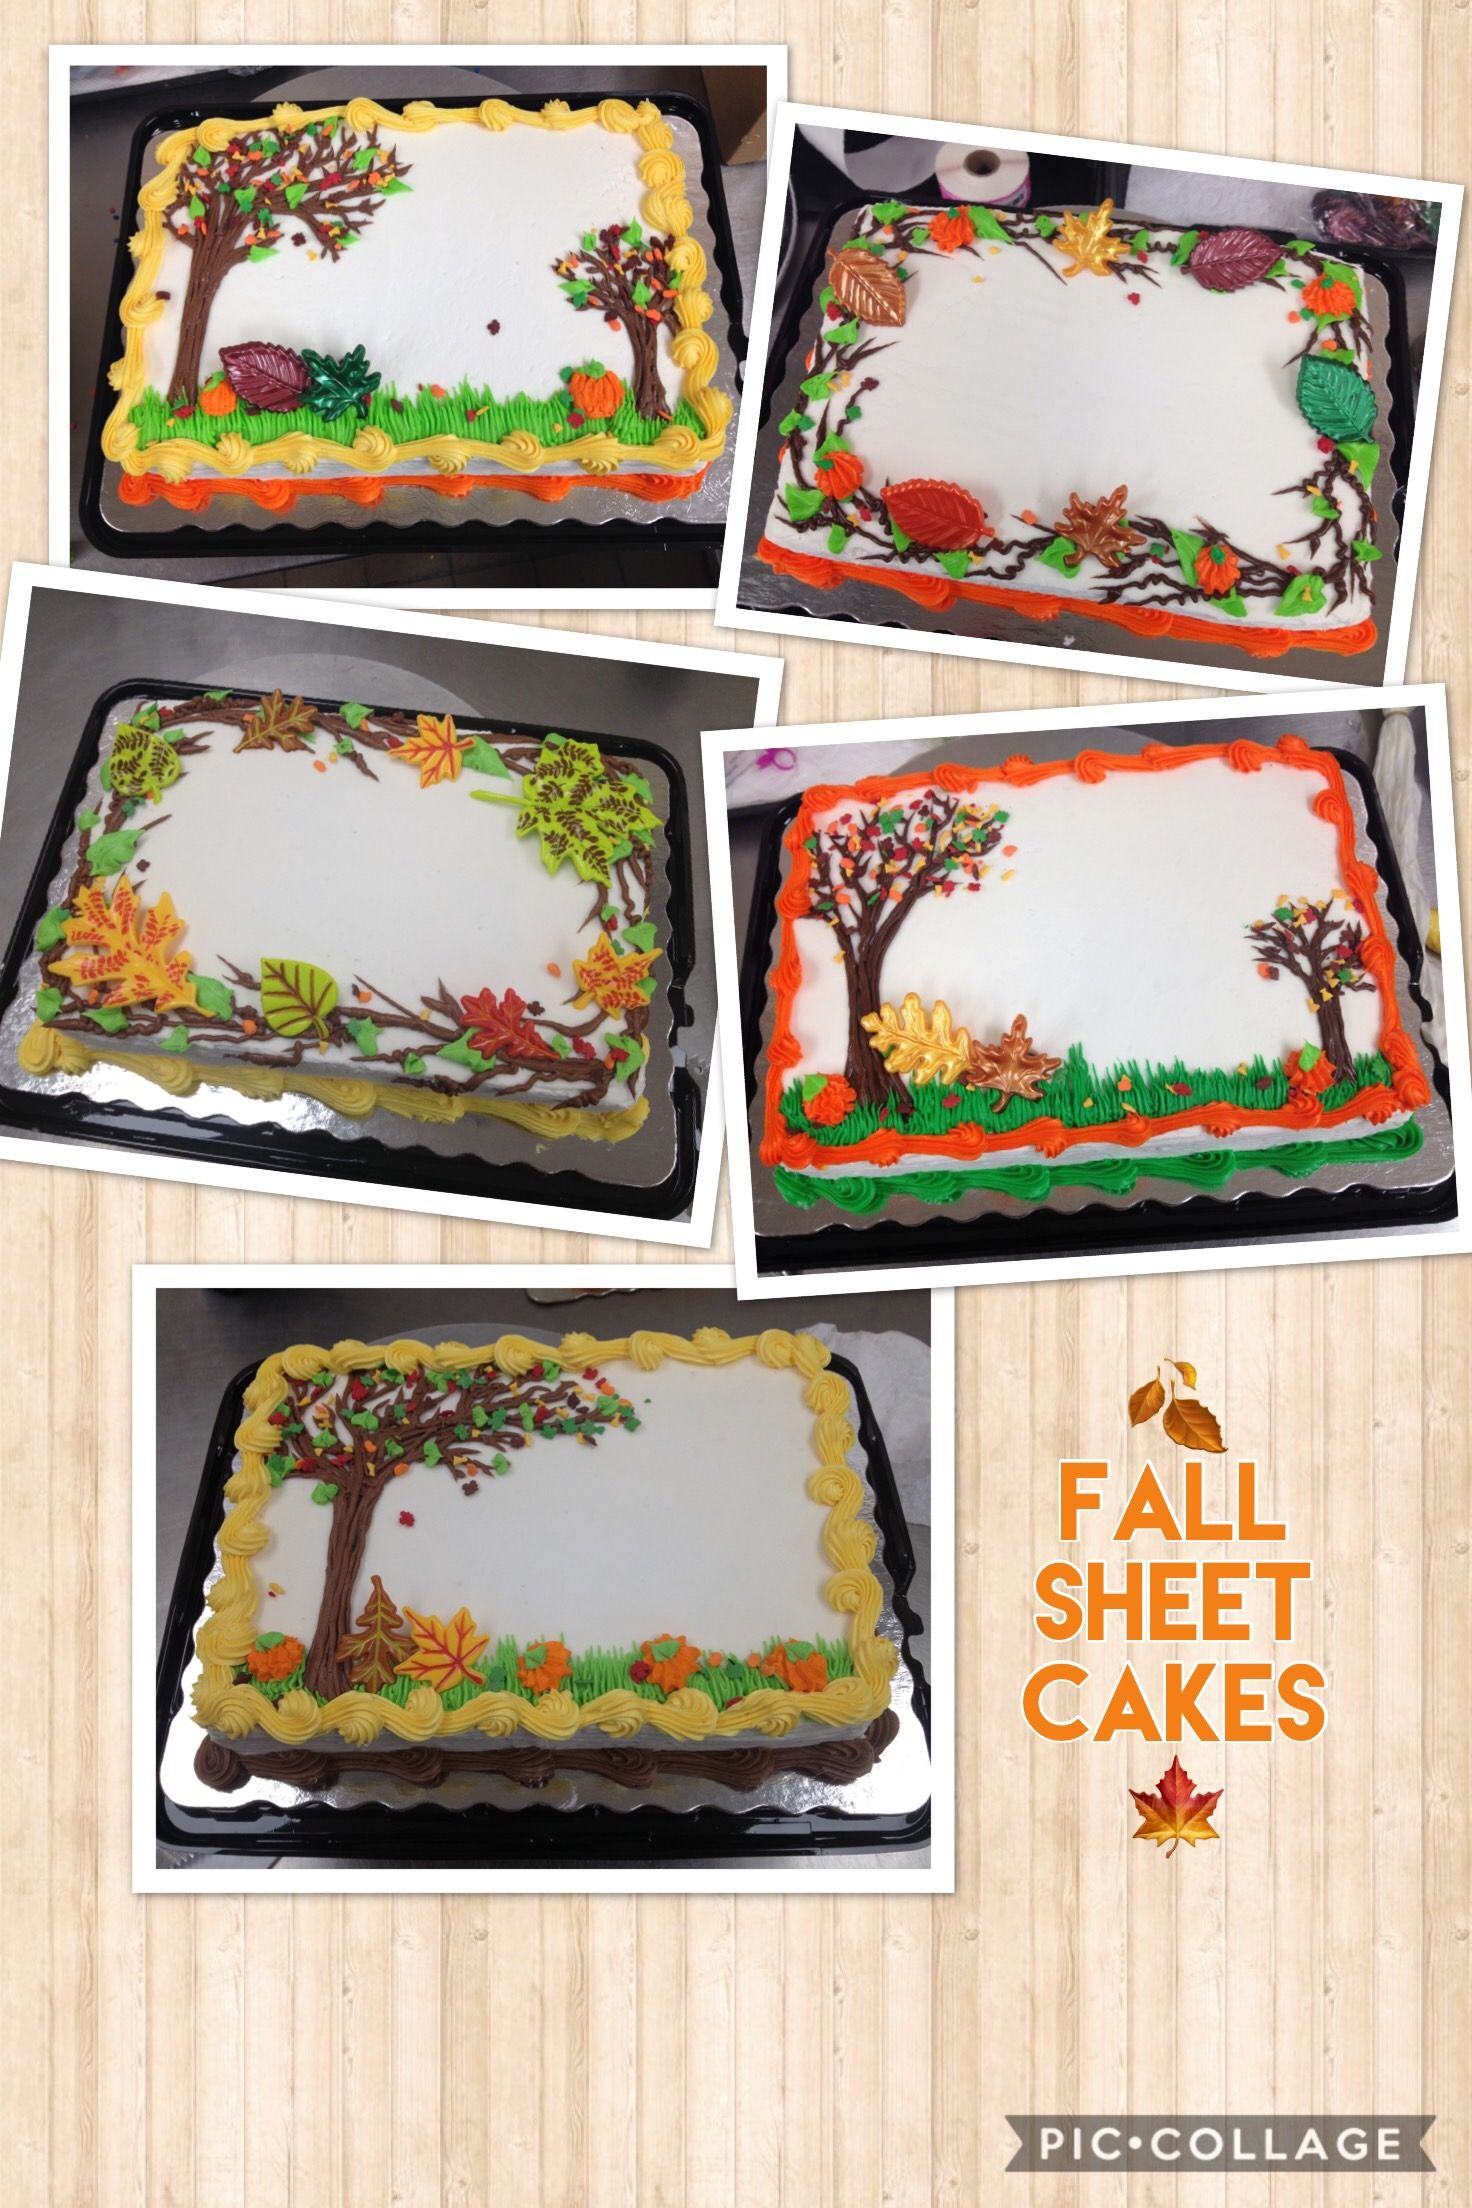 Fall Cakes 2017 Thanksgiving Cakes Decorating Fall Theme Cakes Fall Birthday Cakes